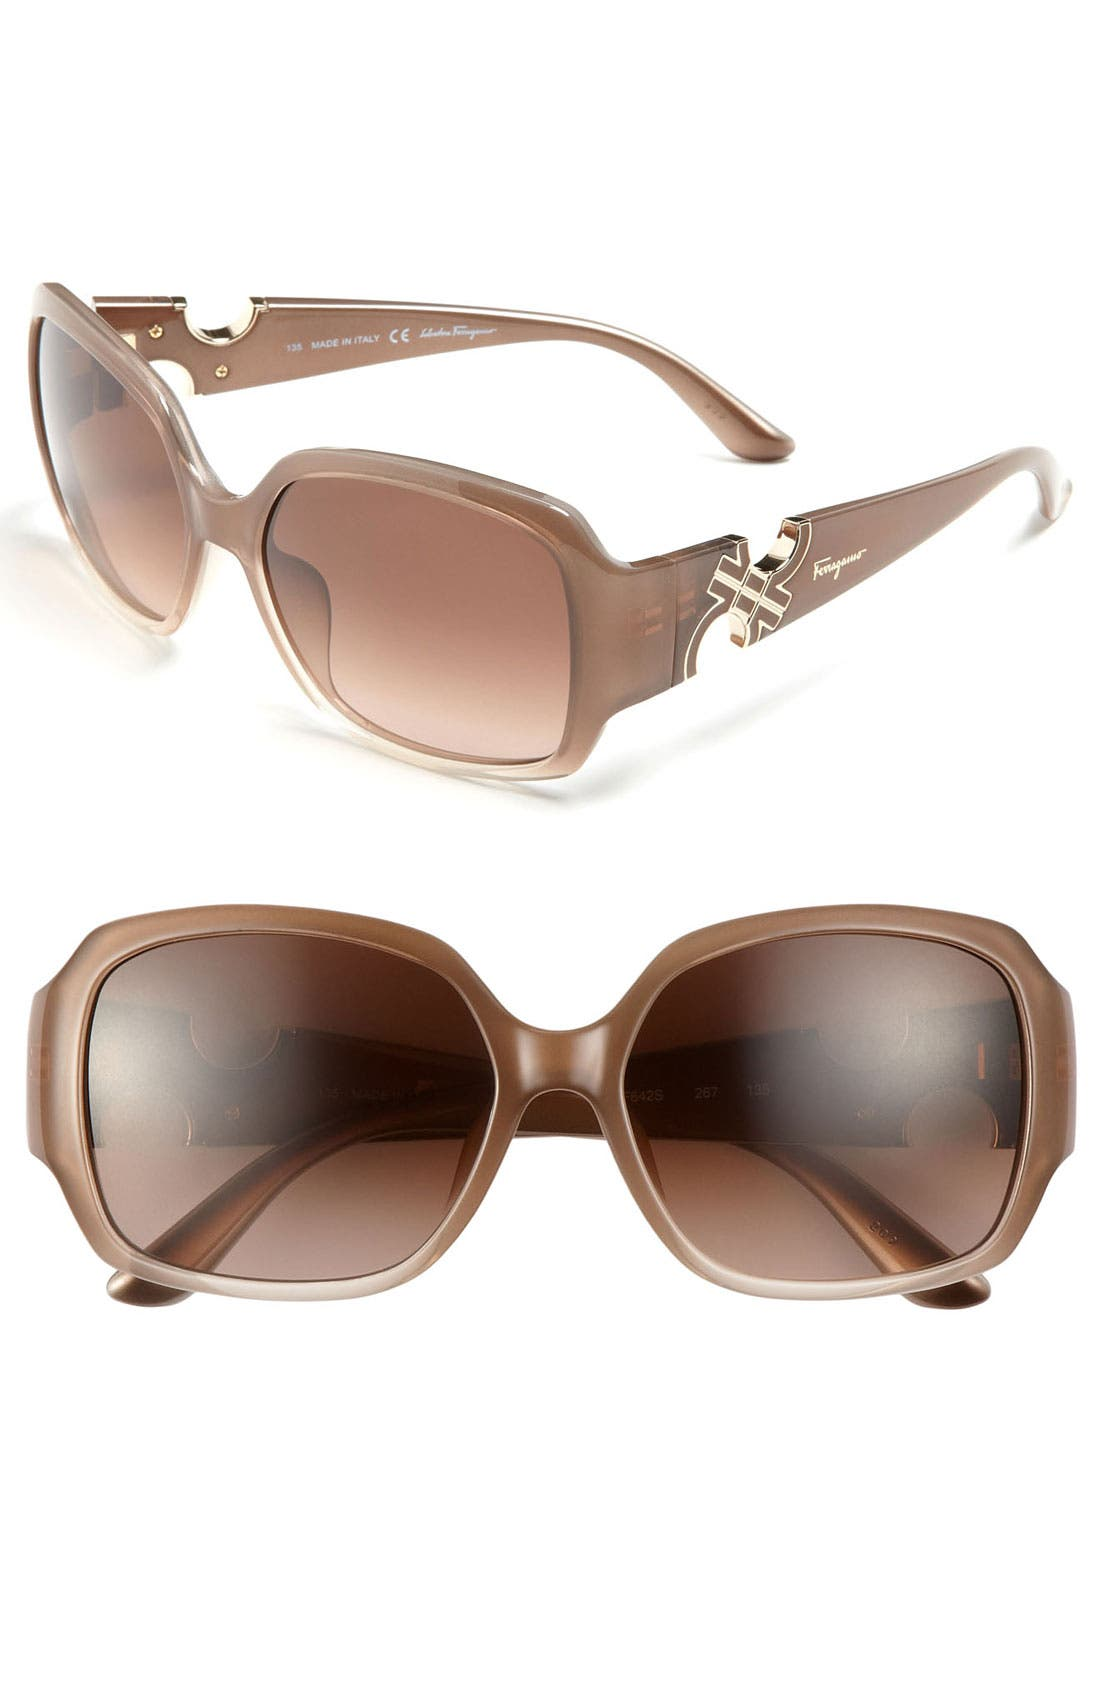 Main Image - Salvatore Ferragamo Oversized Sunglasses